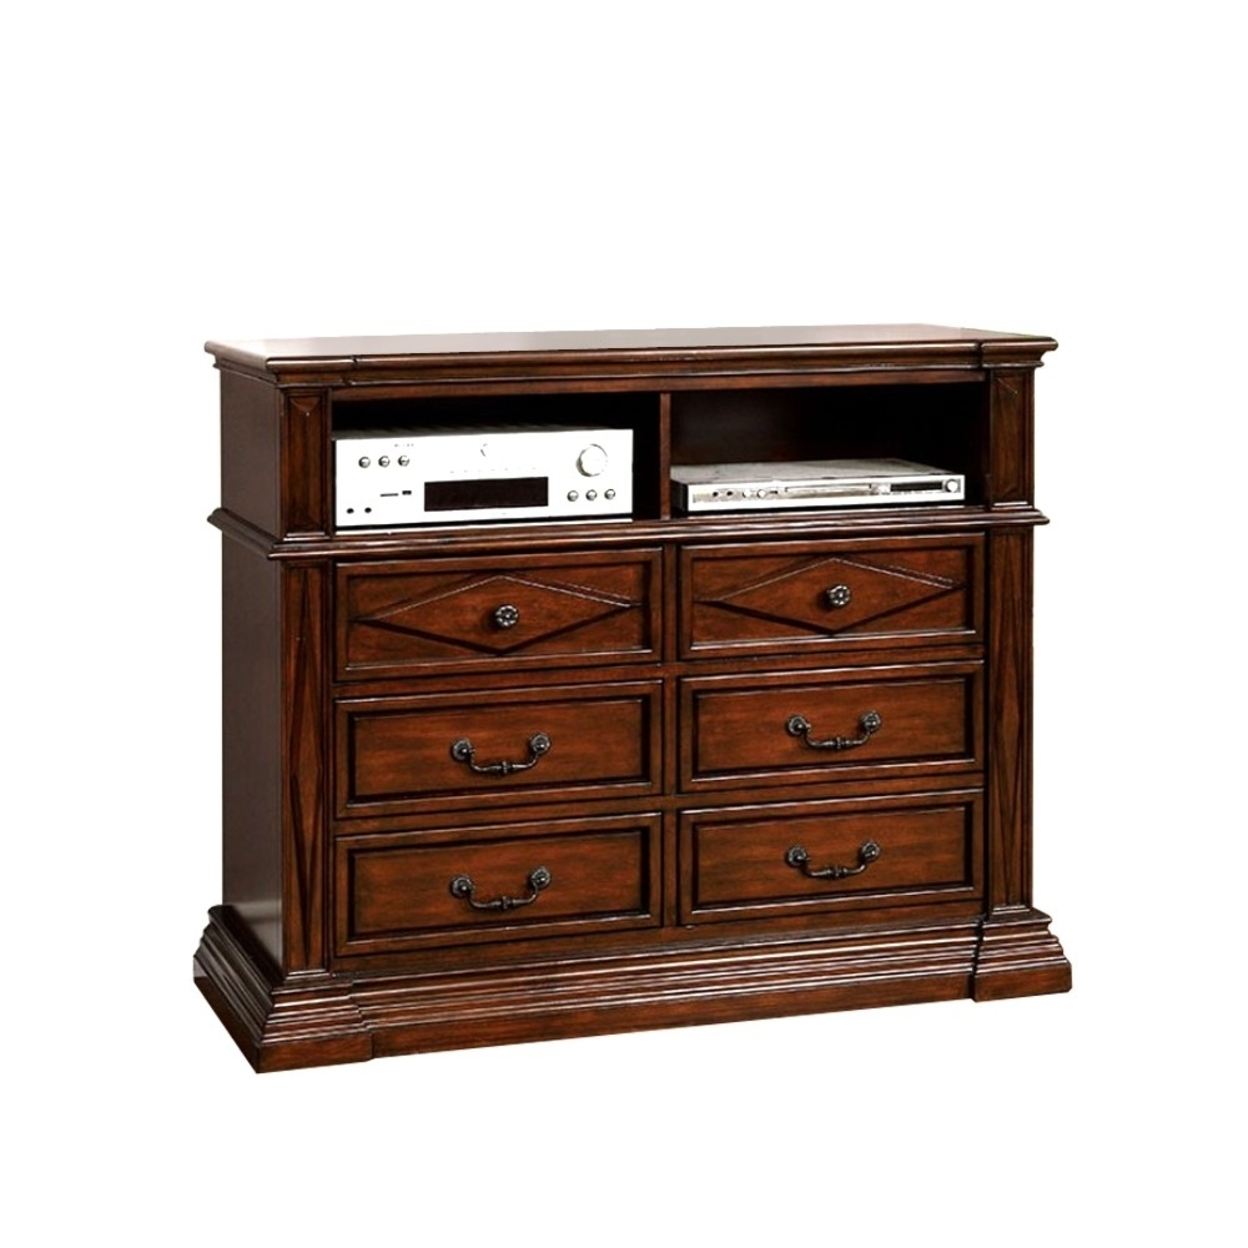 Gayle Transitional Style Media Chest, Cherry Finish